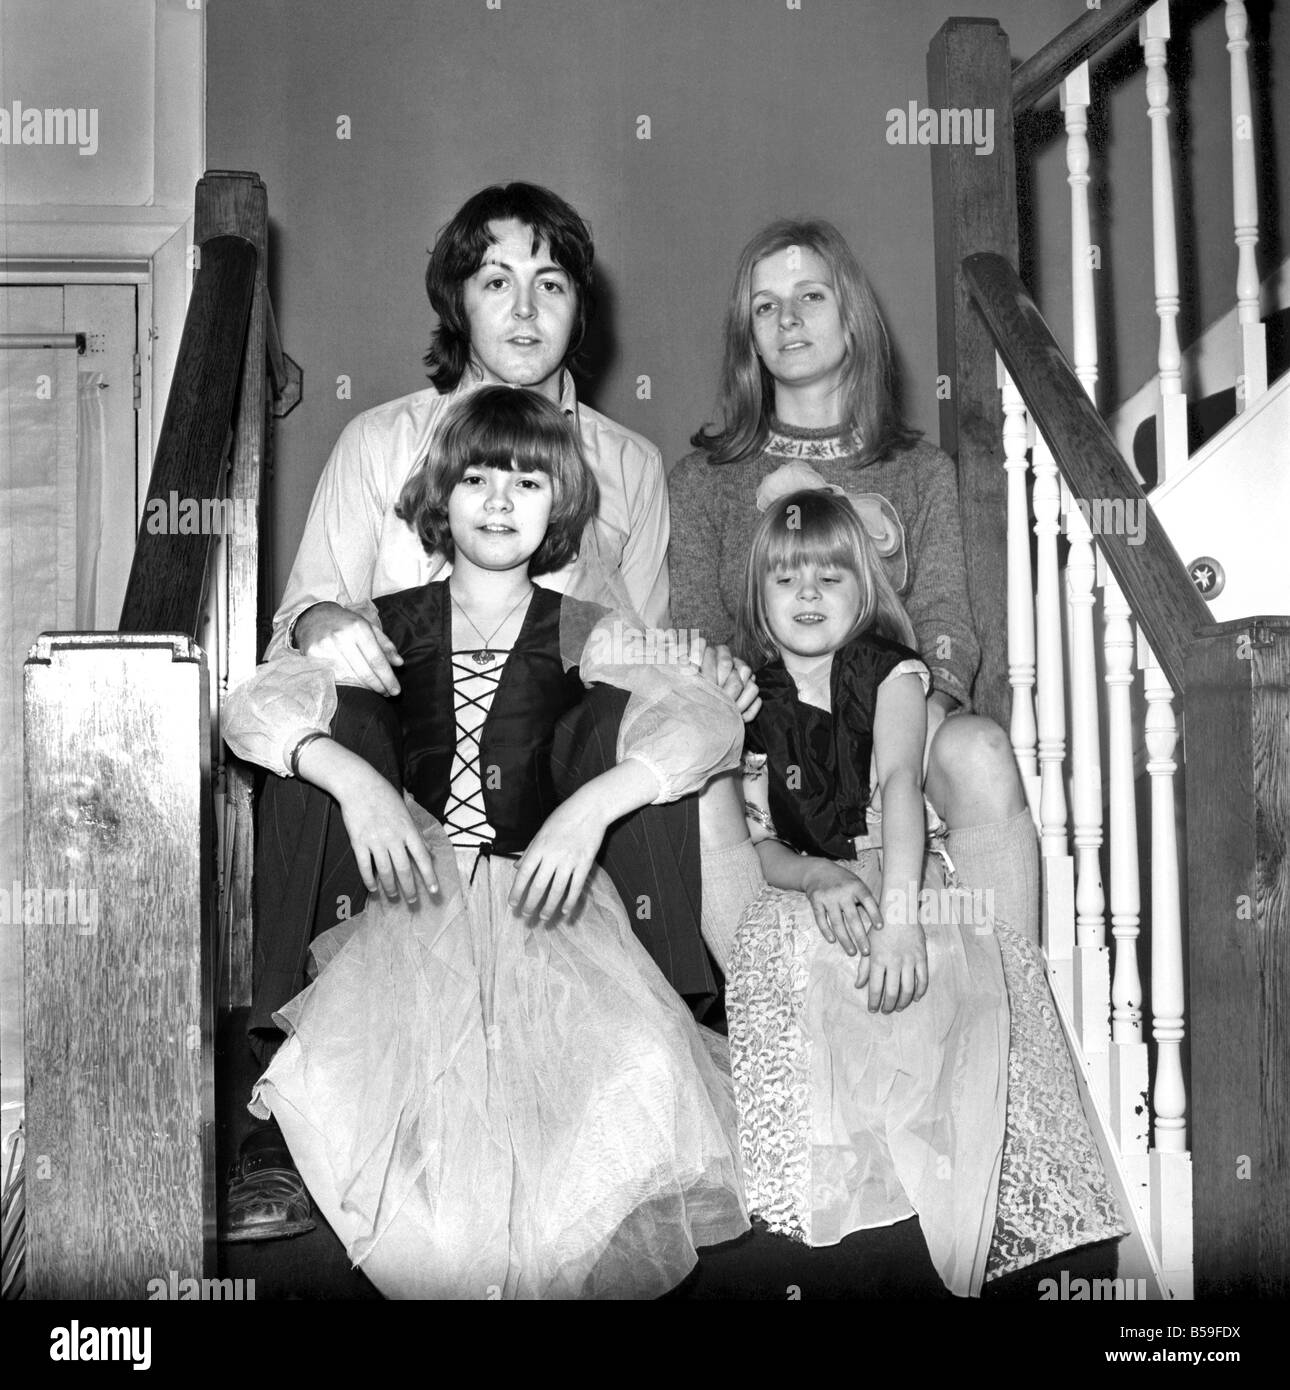 Beatles Singer Paul McCartney With His New Bride Linda Eastman And Children Aged 4 7March 1969 Z02435 001